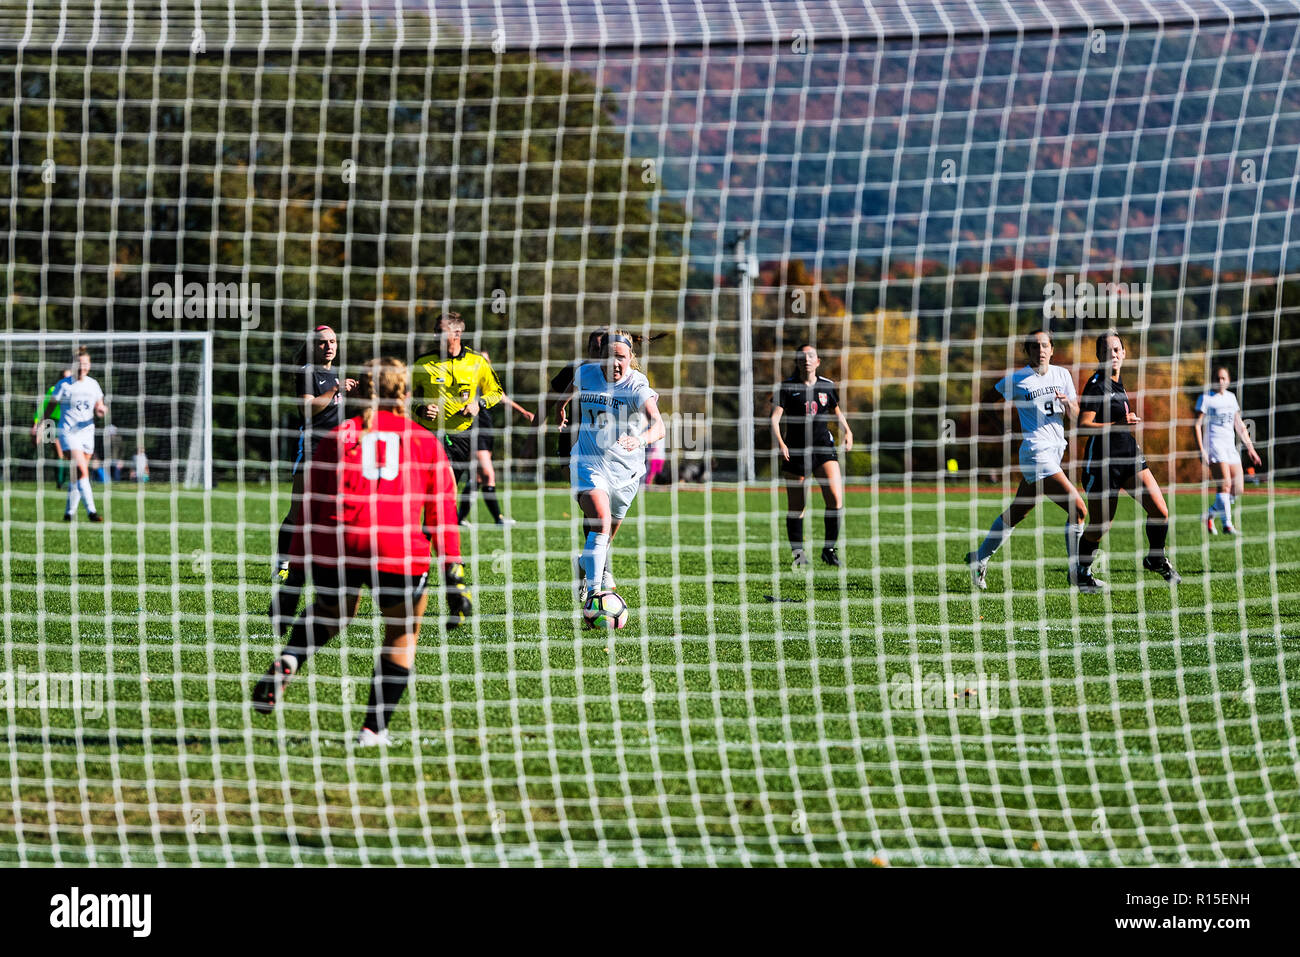 Middlebury College women's soccer game, Vermont, USA. - Stock Image